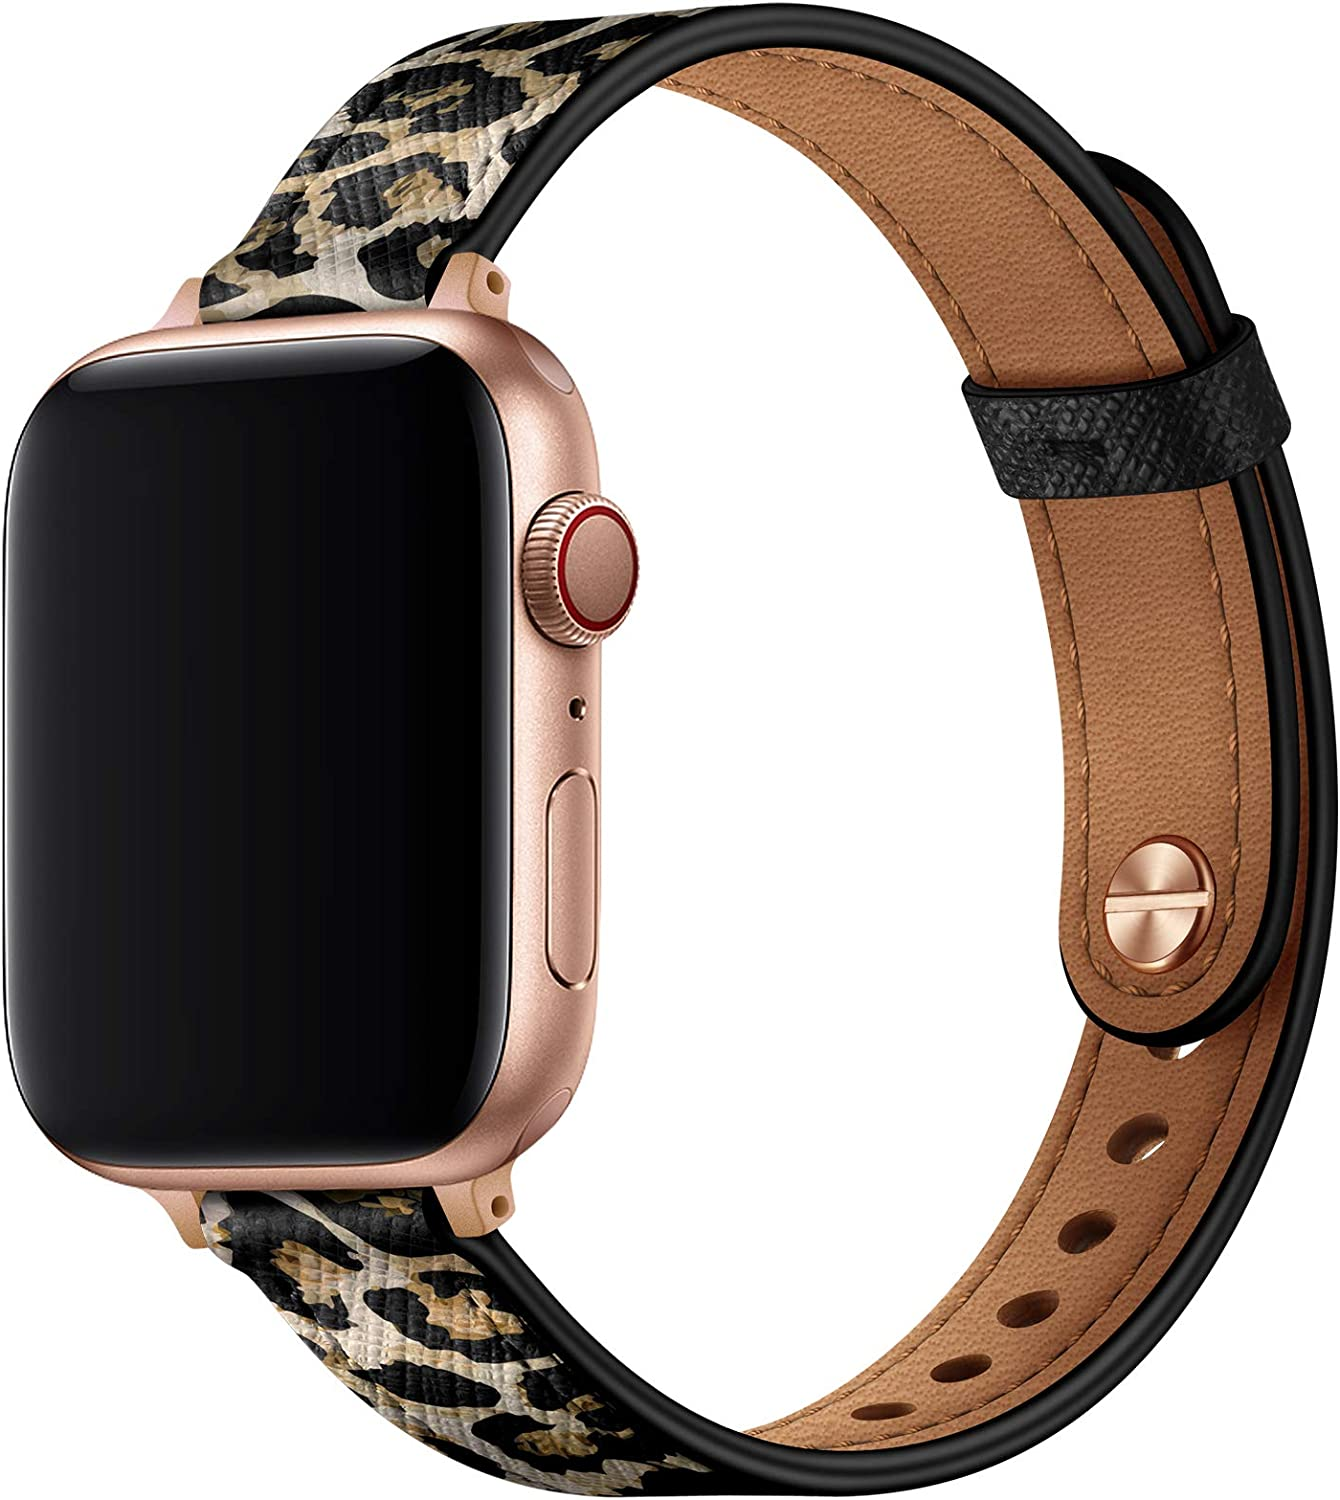 OUHENG Slim Band Compatible with Apple Watch Band 40mm 38mm 44mm 42mm, Women Genuine Leather Band Replacement Thin Strap for iWatch SE Series 6 5 4 3 2 1 (Leopard/Rose Gold, 40mm 38mm)